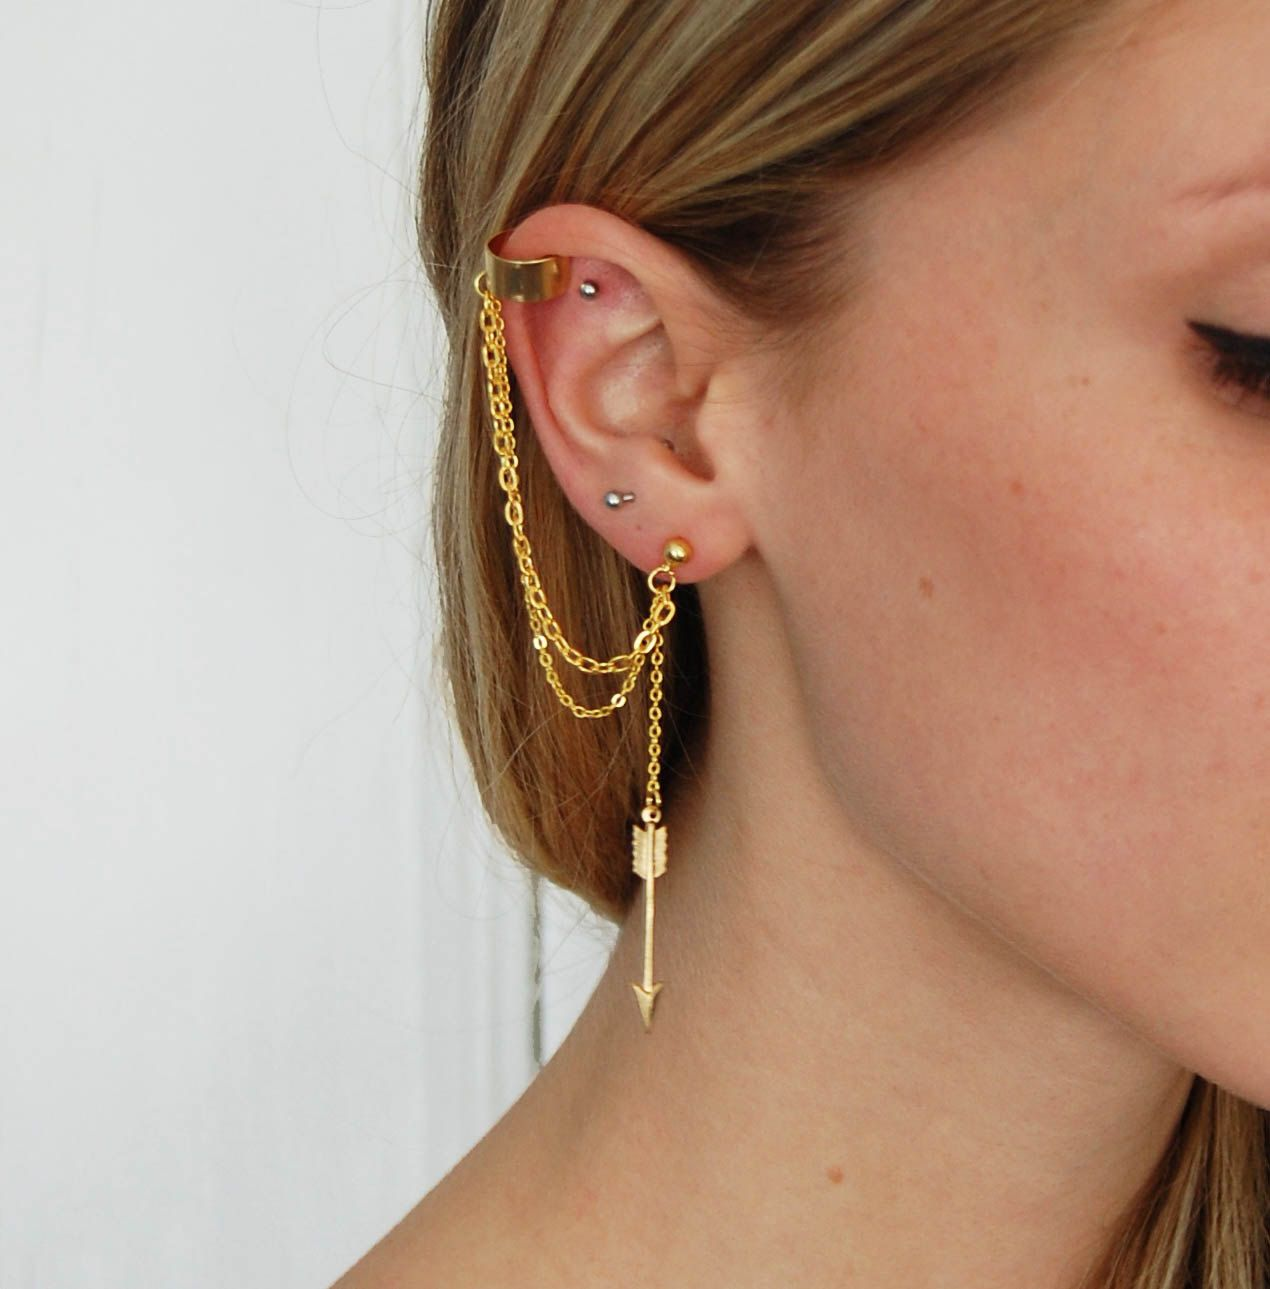 Gold Arrow Earring And Ear Cuff Accessorize